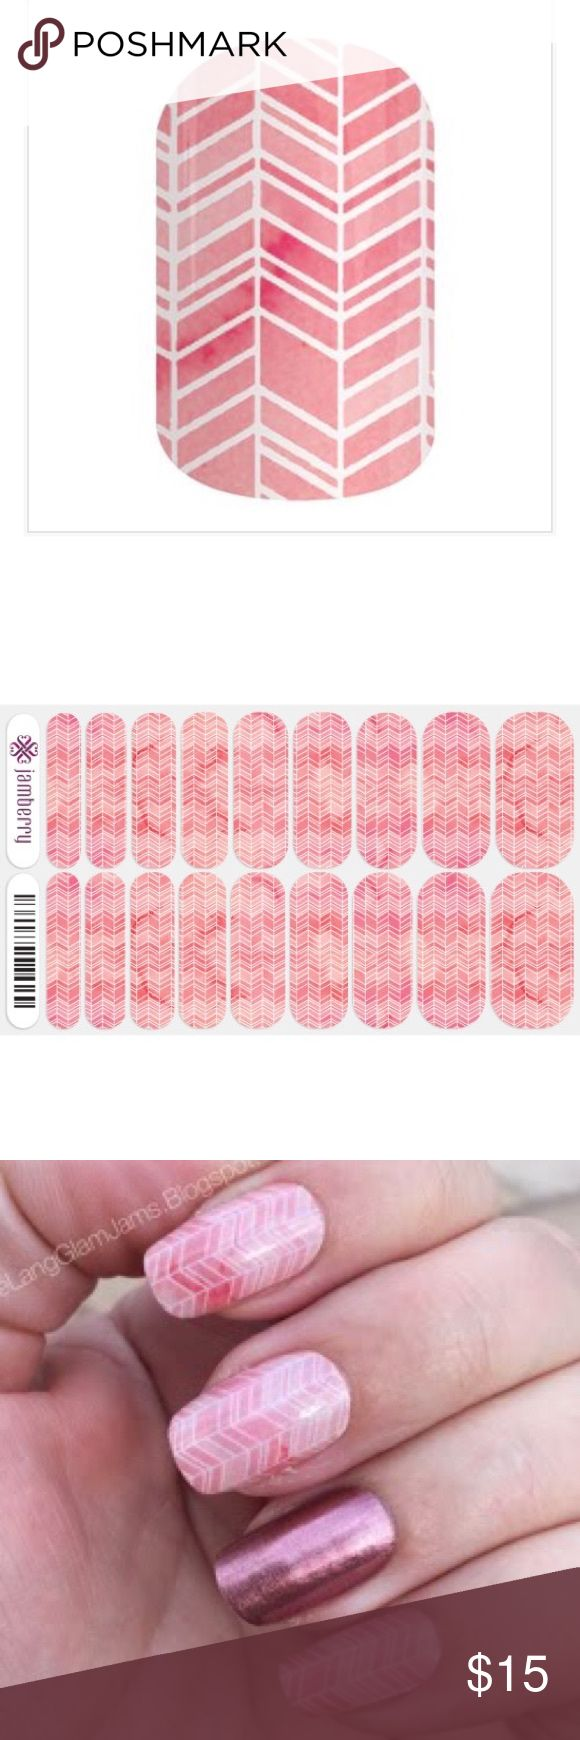 •Full Set Of JAMBERRY Sorbet Nail Wraps• Super cute and nontoxic like nail polish. Full sheet of jamberry plus 1 mini sample piece! Jamberry Accessories